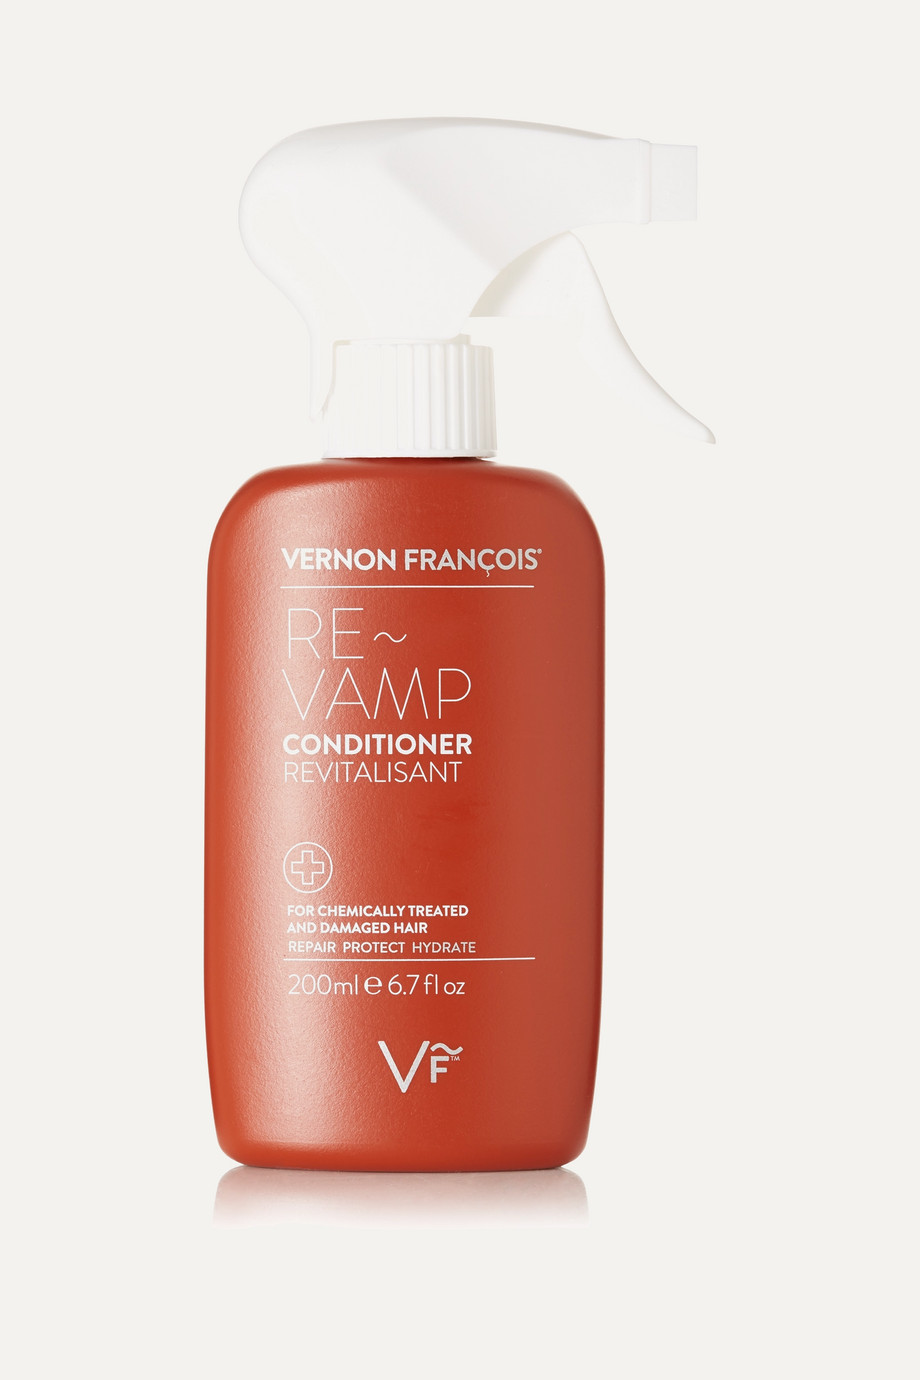 Vernon François Re-Vamp™ Conditioner, 200ml